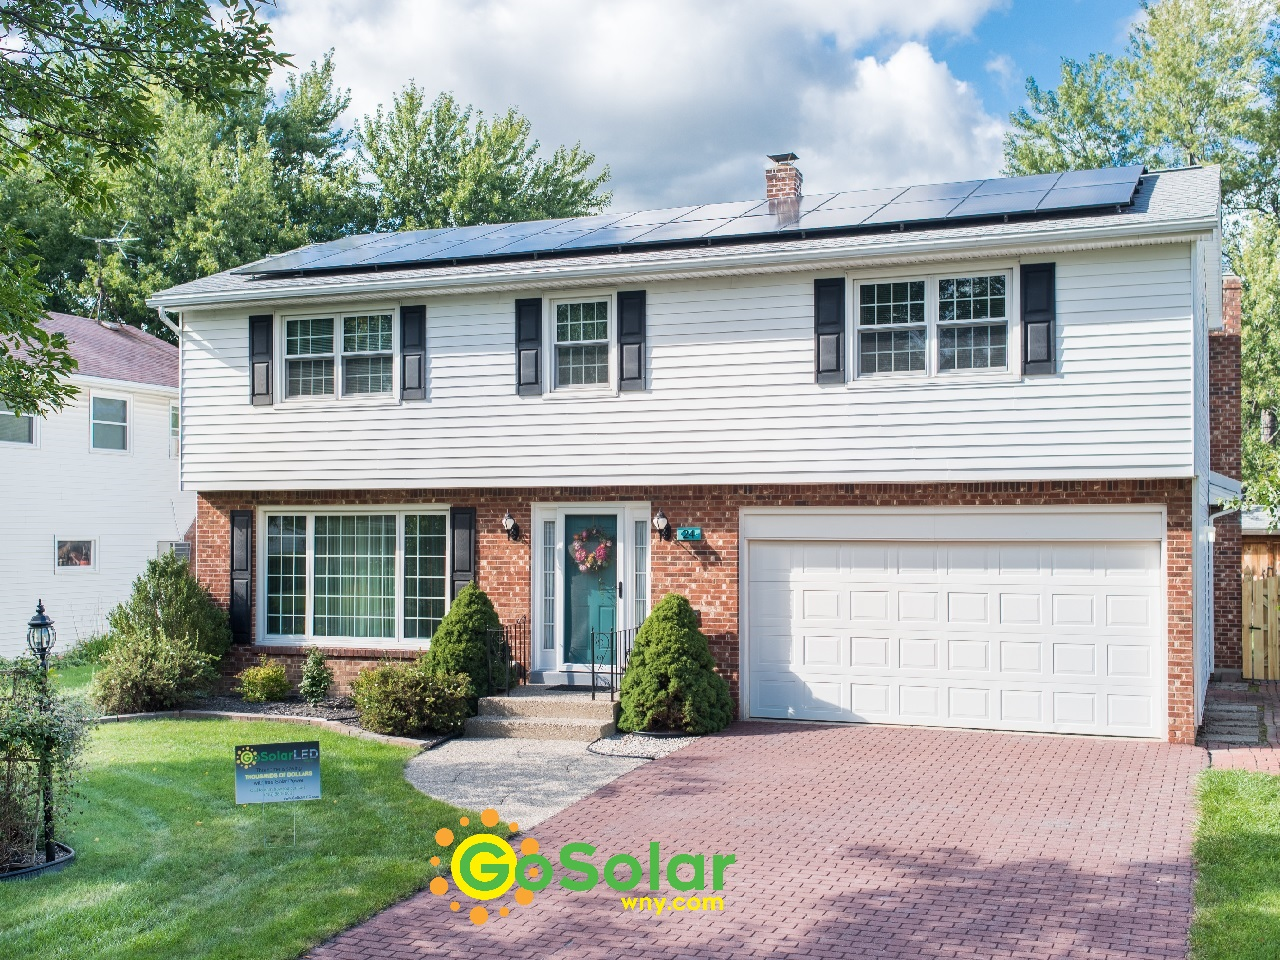 Solar Panel Installer Amherst, NY